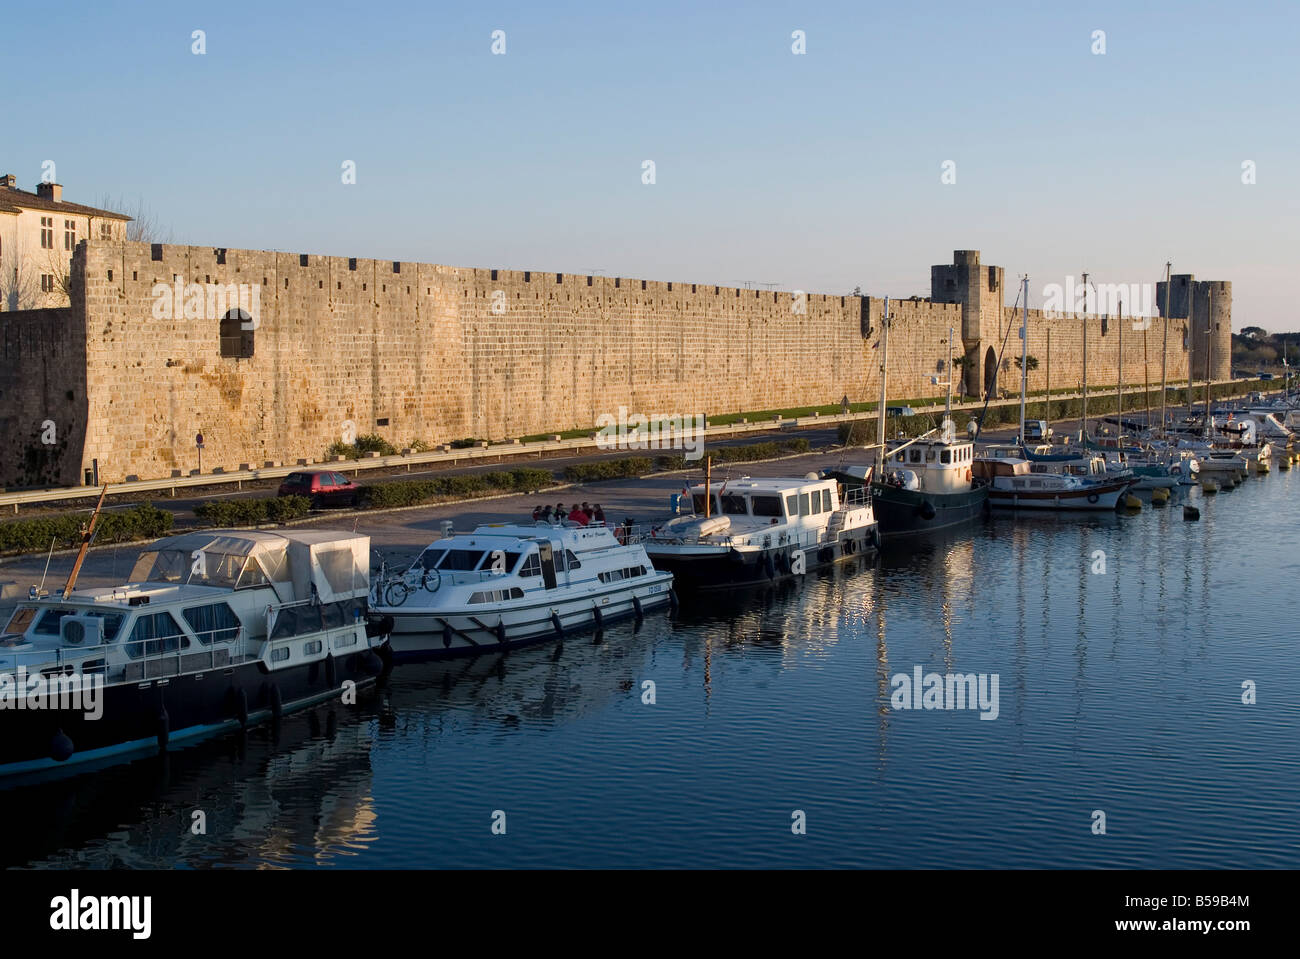 Walls dating from 13th century, Aigues-Mortes, Languedoc, France, Europe - Stock Image